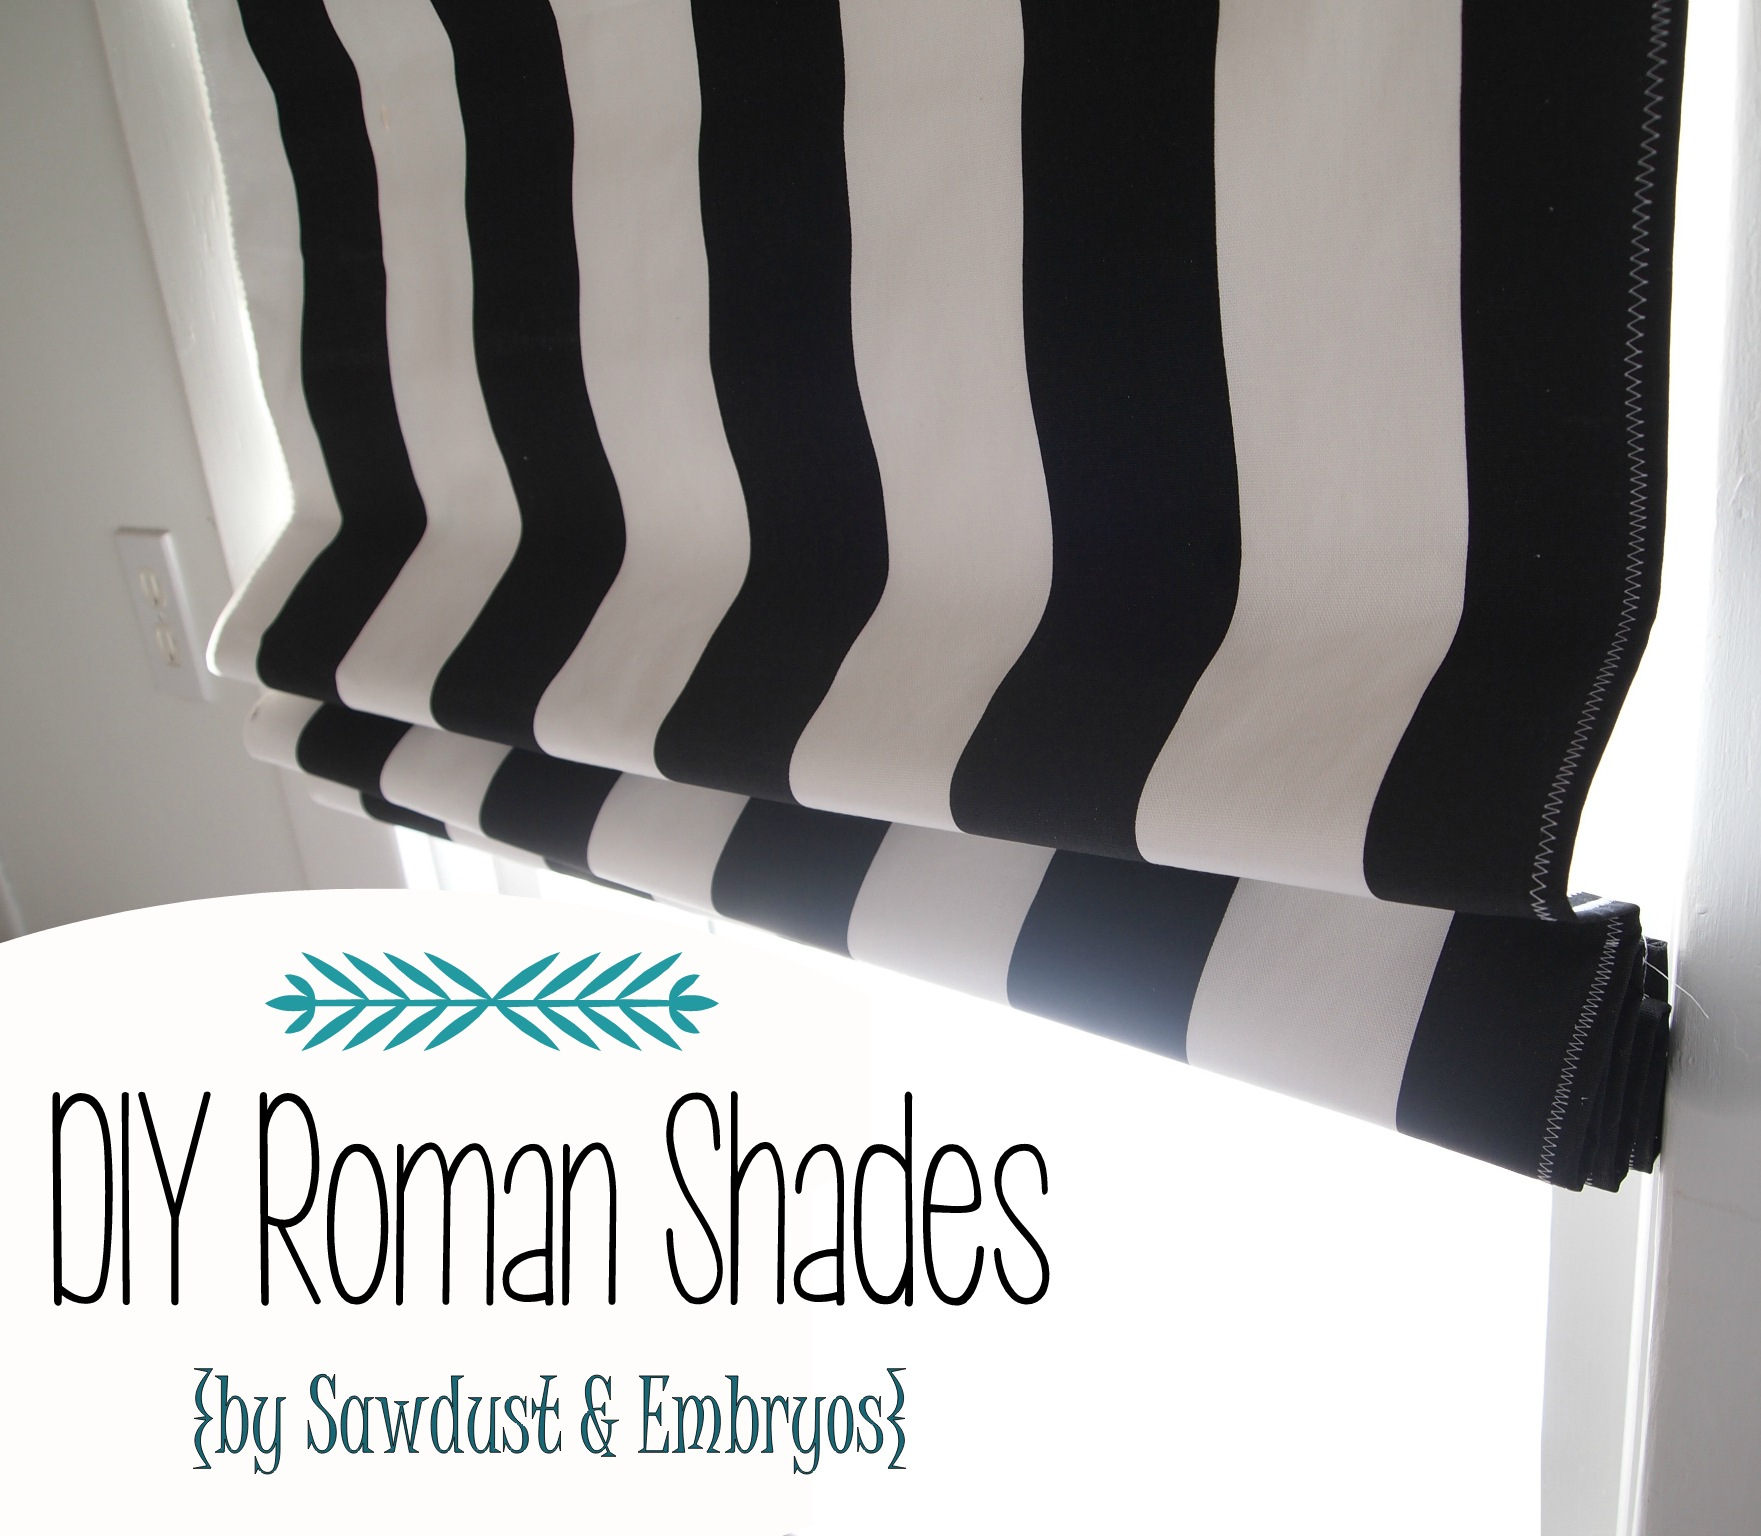 diy roman chair personalized kid beach chairs how to make shades using mini blinds